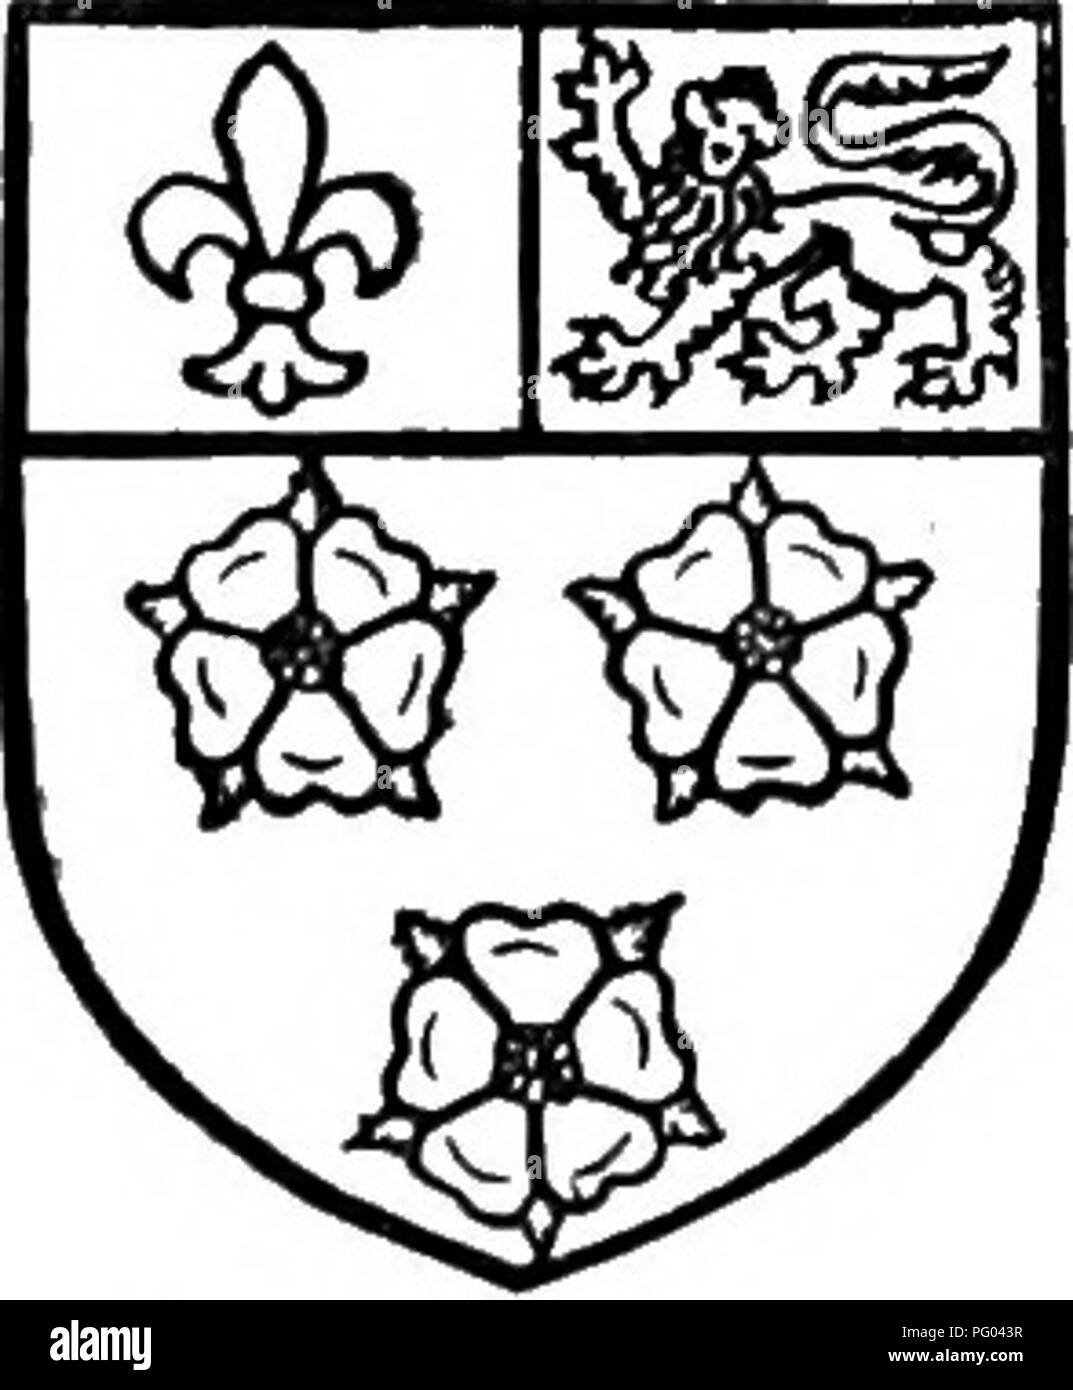 """. The Victoria history of the county of Bedford. Natural history. A HISTORY OF BEDFORDSHIRE. King's C o l l e g k, Cambridge. Sable three lilies argent and a chief party azure viith afleur de Hi or and gules vjith a leopard or. for in 1522 Farley was again crown property.*"""" Lysons offers a supposition, based on no ascertainable authority, and not corroborated by its subsequent history, that King's College had conveyed Farley to St. Albans in exchange for other lands.^""""' St. Albans cer- tainly appears to have tried to enforce some claim on Farley, which lay adjacent to its own manor o Stock Photo"""